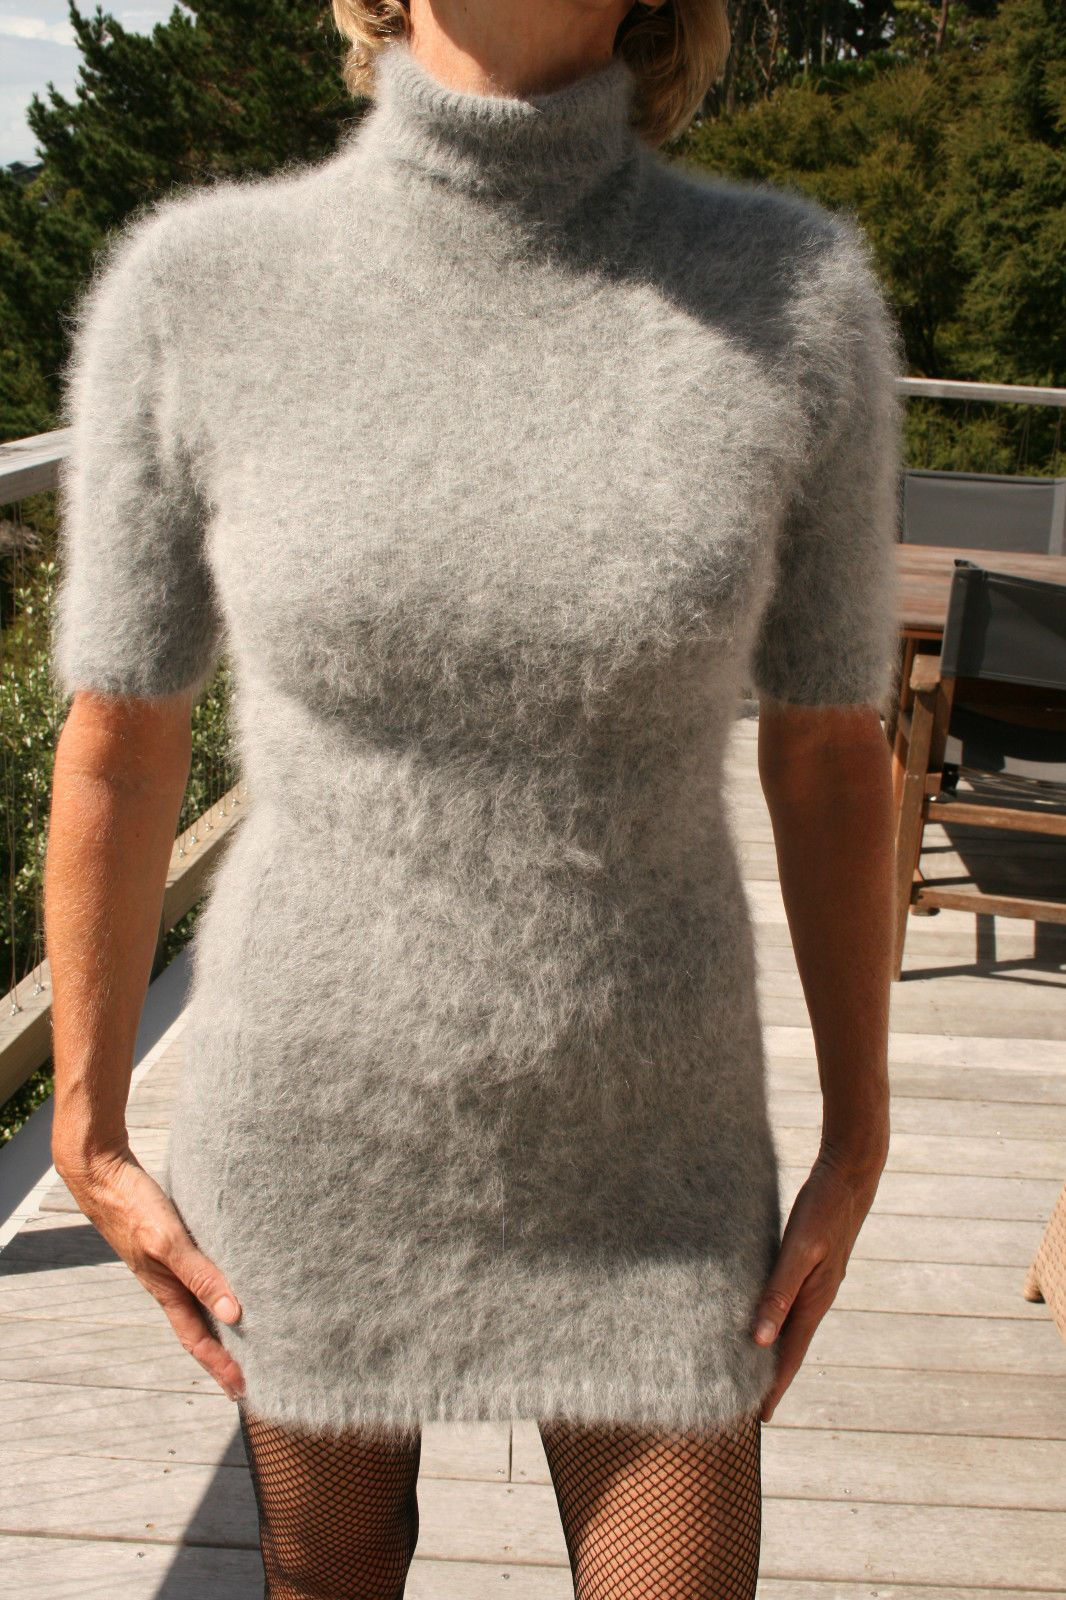 Mohair Pullover XL - Mohair Sweater XL - Unisex - Super - LOOK ...